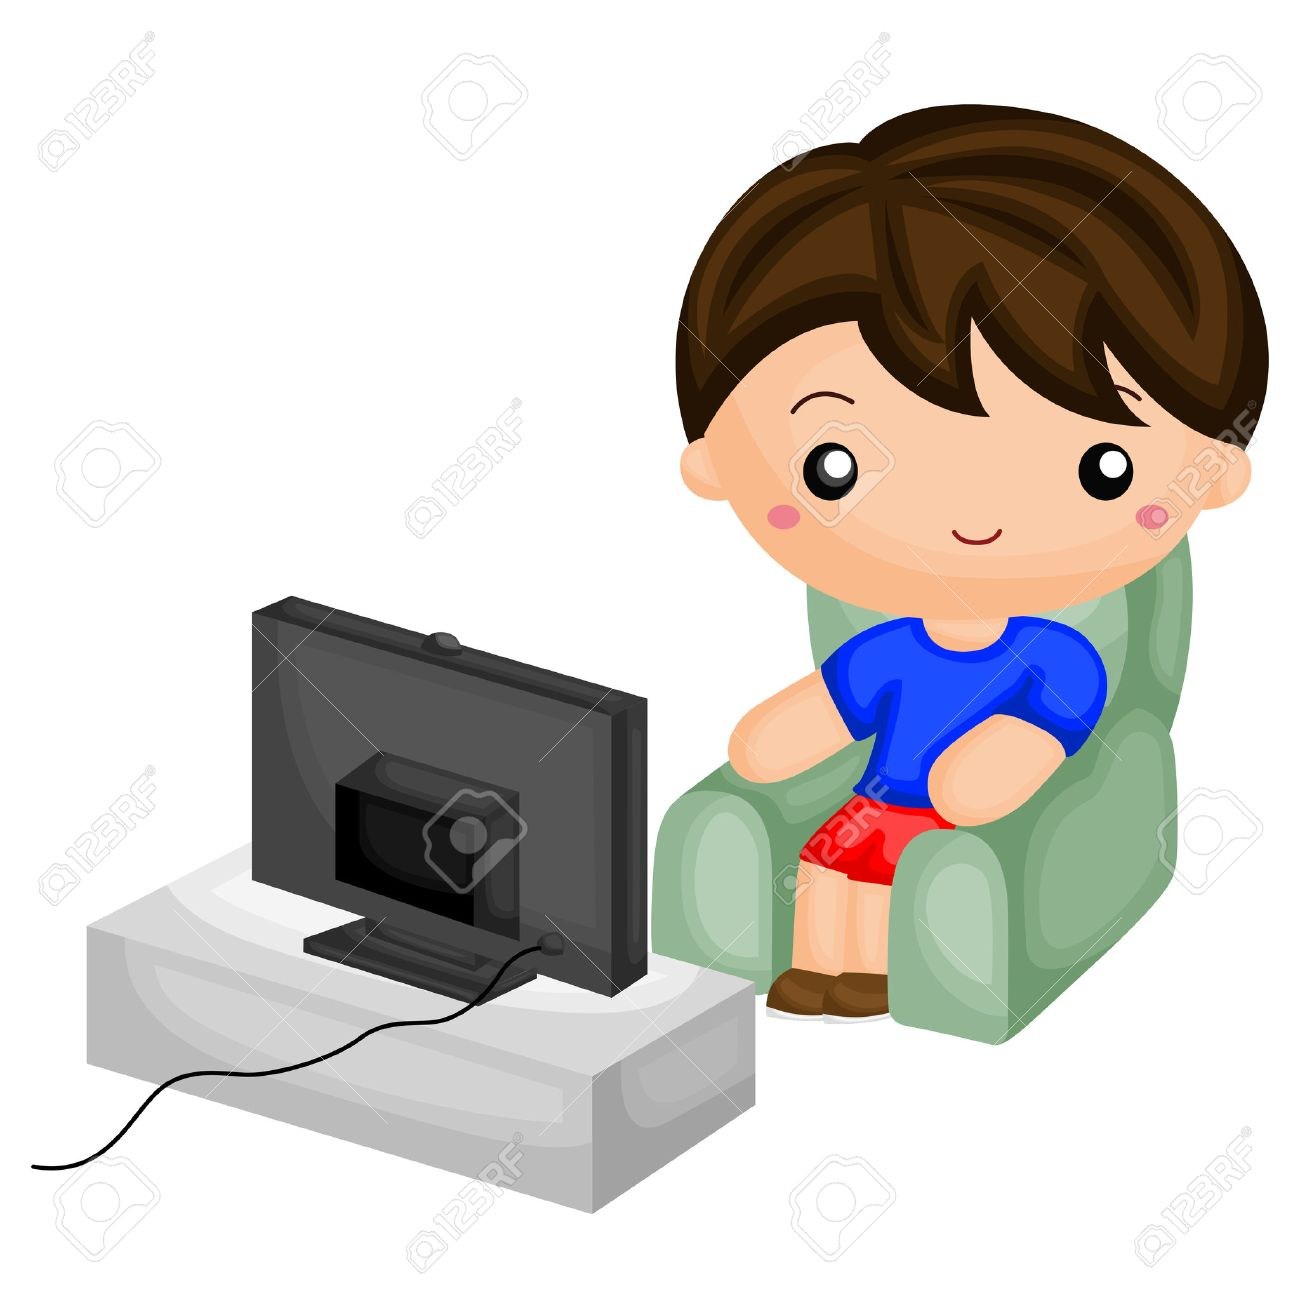 Child watching tv clipart 3 » Clipart Station.